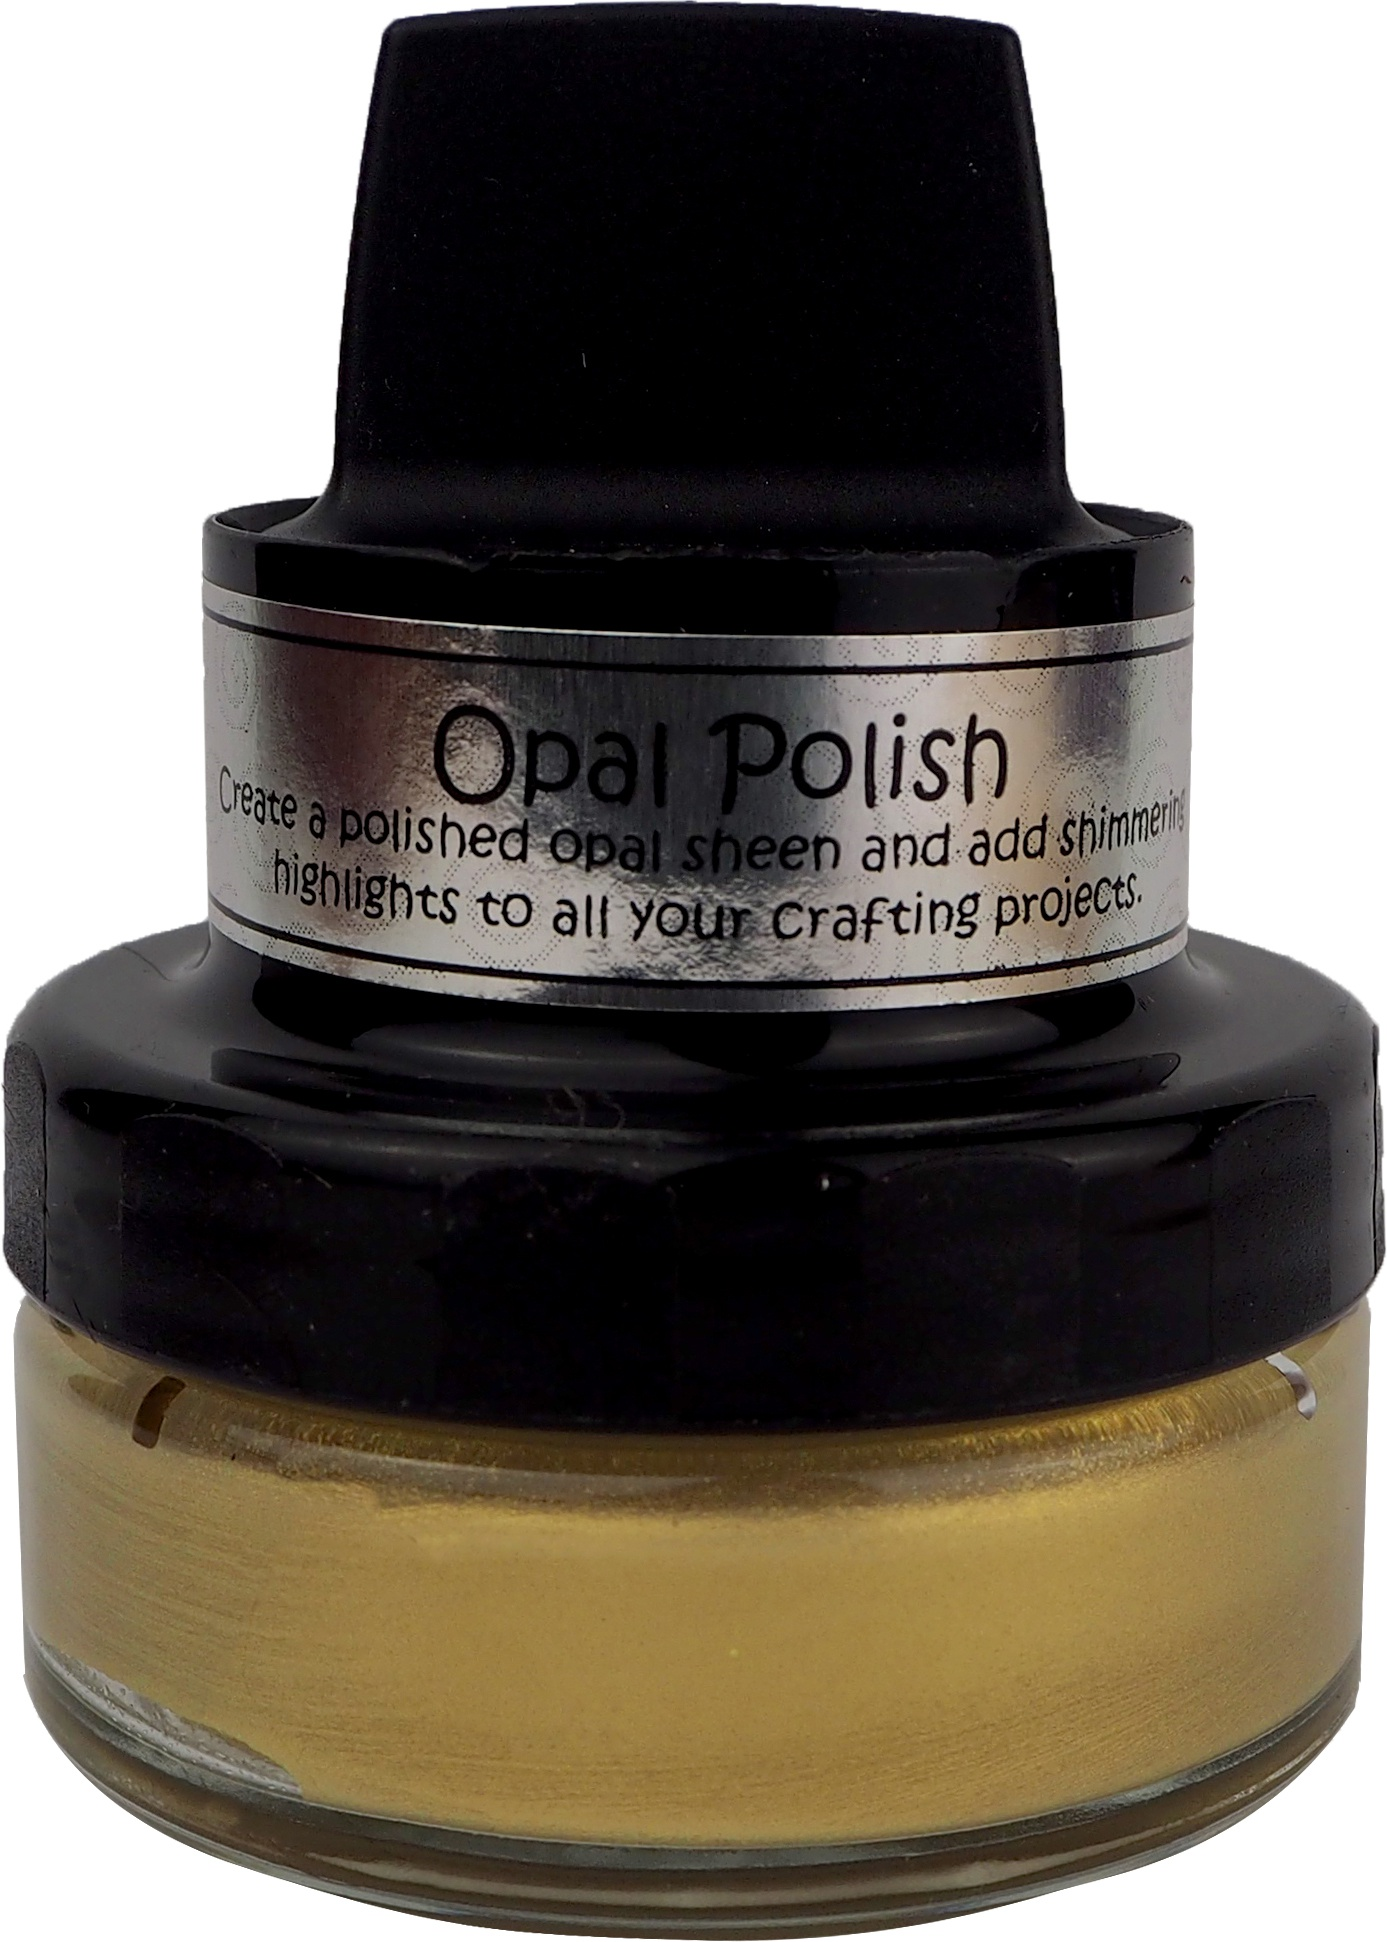 Cosmic Shimmer Opal Polish - Golden Glow, 50ml